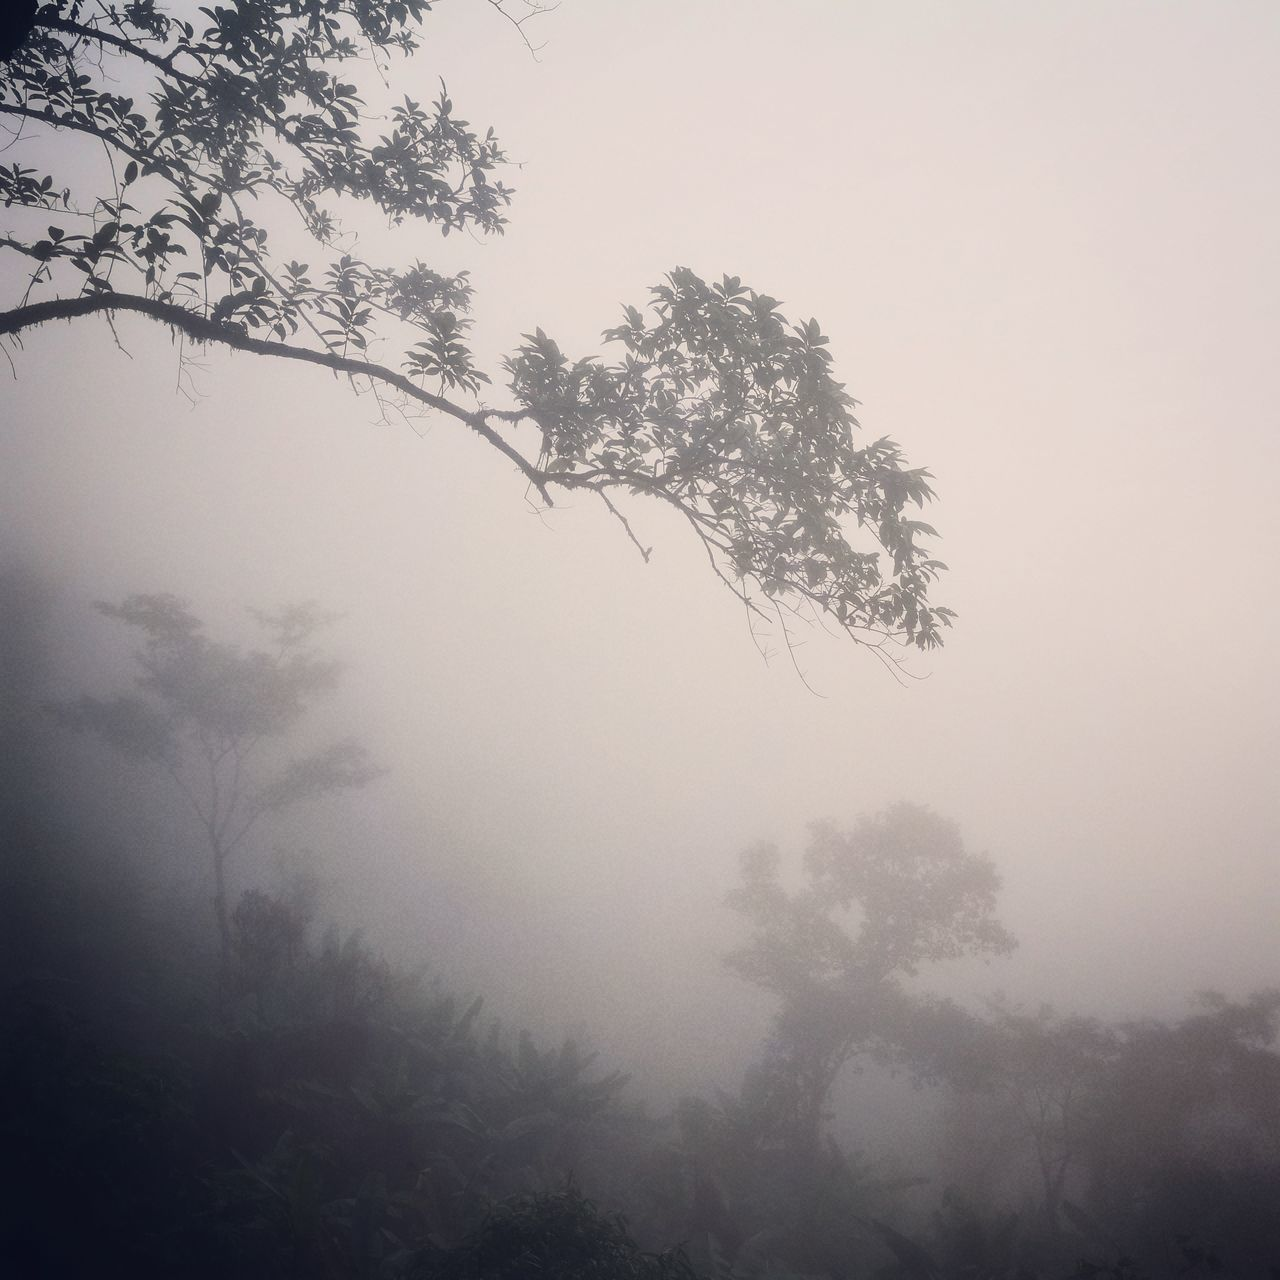 Nature Tree Fantasy Fog Forest Sunset Backgrounds No People SilhouetteThailand Nort Thailand Beauty In Nature Branch Sky Outdoors Close-up Day